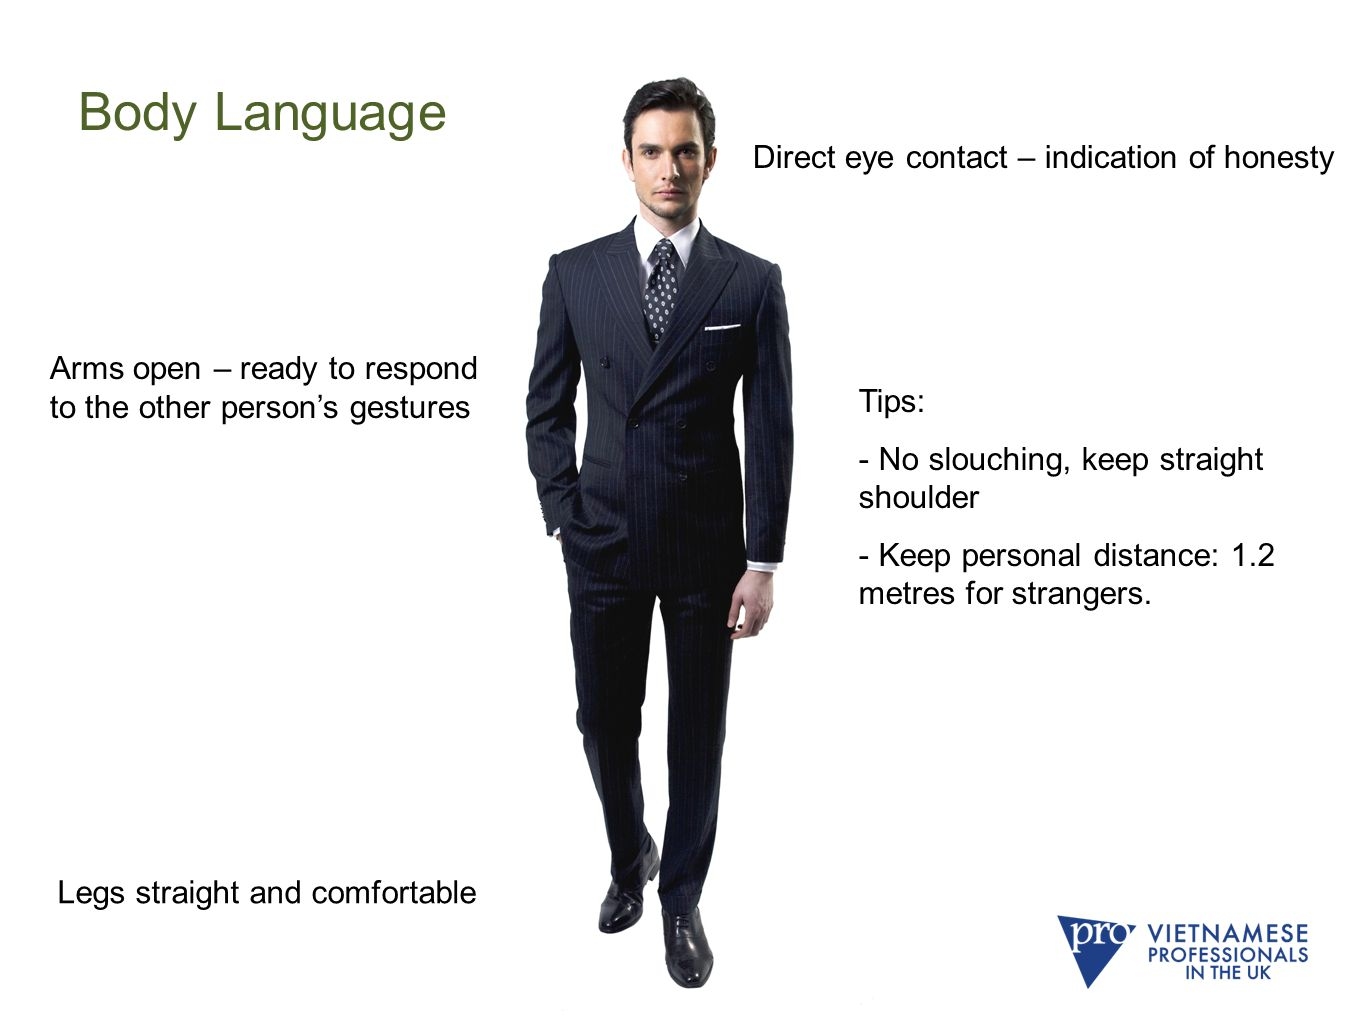 Body Language Direct eye contact – indication of honesty Arms open – ready to respond to the other person's gestures Legs straight and comfortable Tips: - No slouching, keep straight shoulder - Keep personal distance: 1.2 metres for strangers.